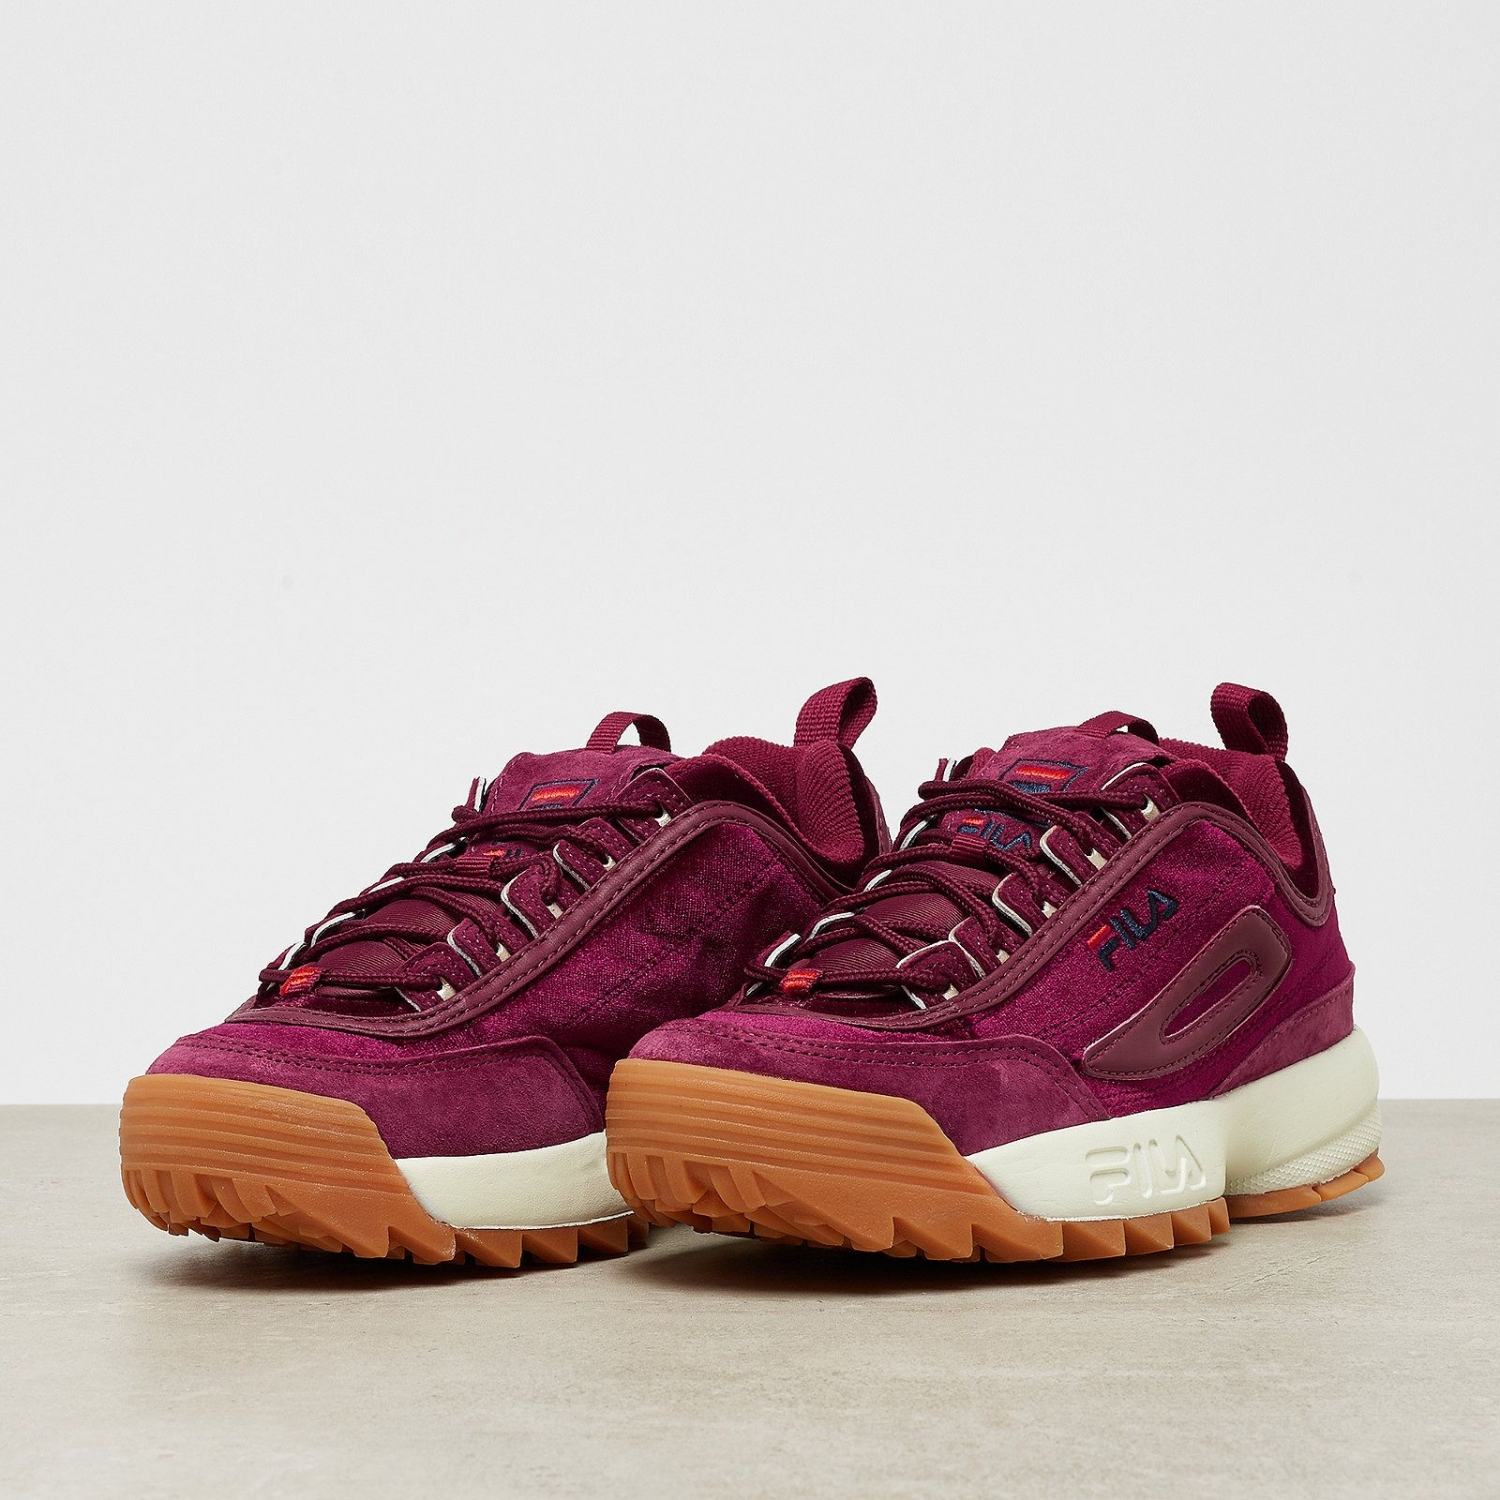 Fila - Disruptor Low Velvet Wmn burgundy red - 00014...  5d267d6190